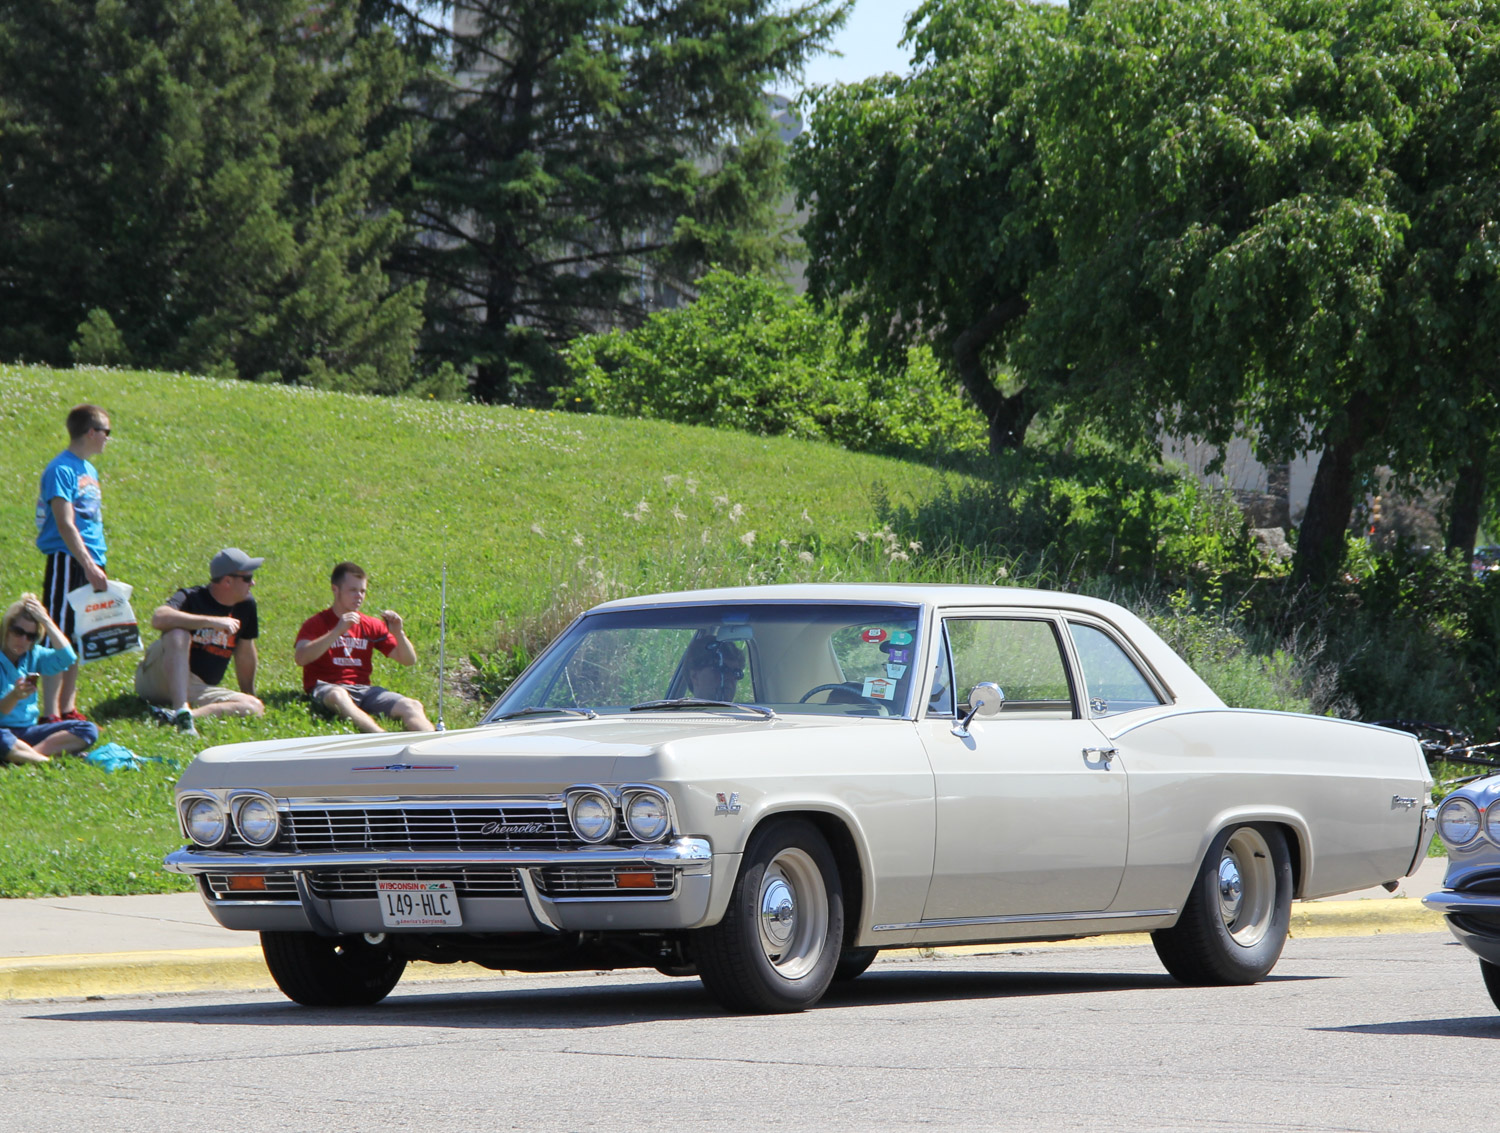 The 1965 Biscayne was the base model, and also the lightest of Chevy B-bodies. Combined with a big-block, as this example possesses, made for the quickest full-size cars in the drag racing production classes. When Chevy redesigned the outer body in 1969, it kept the sedan bodies (as hardtops) and discontinued the fastback body.